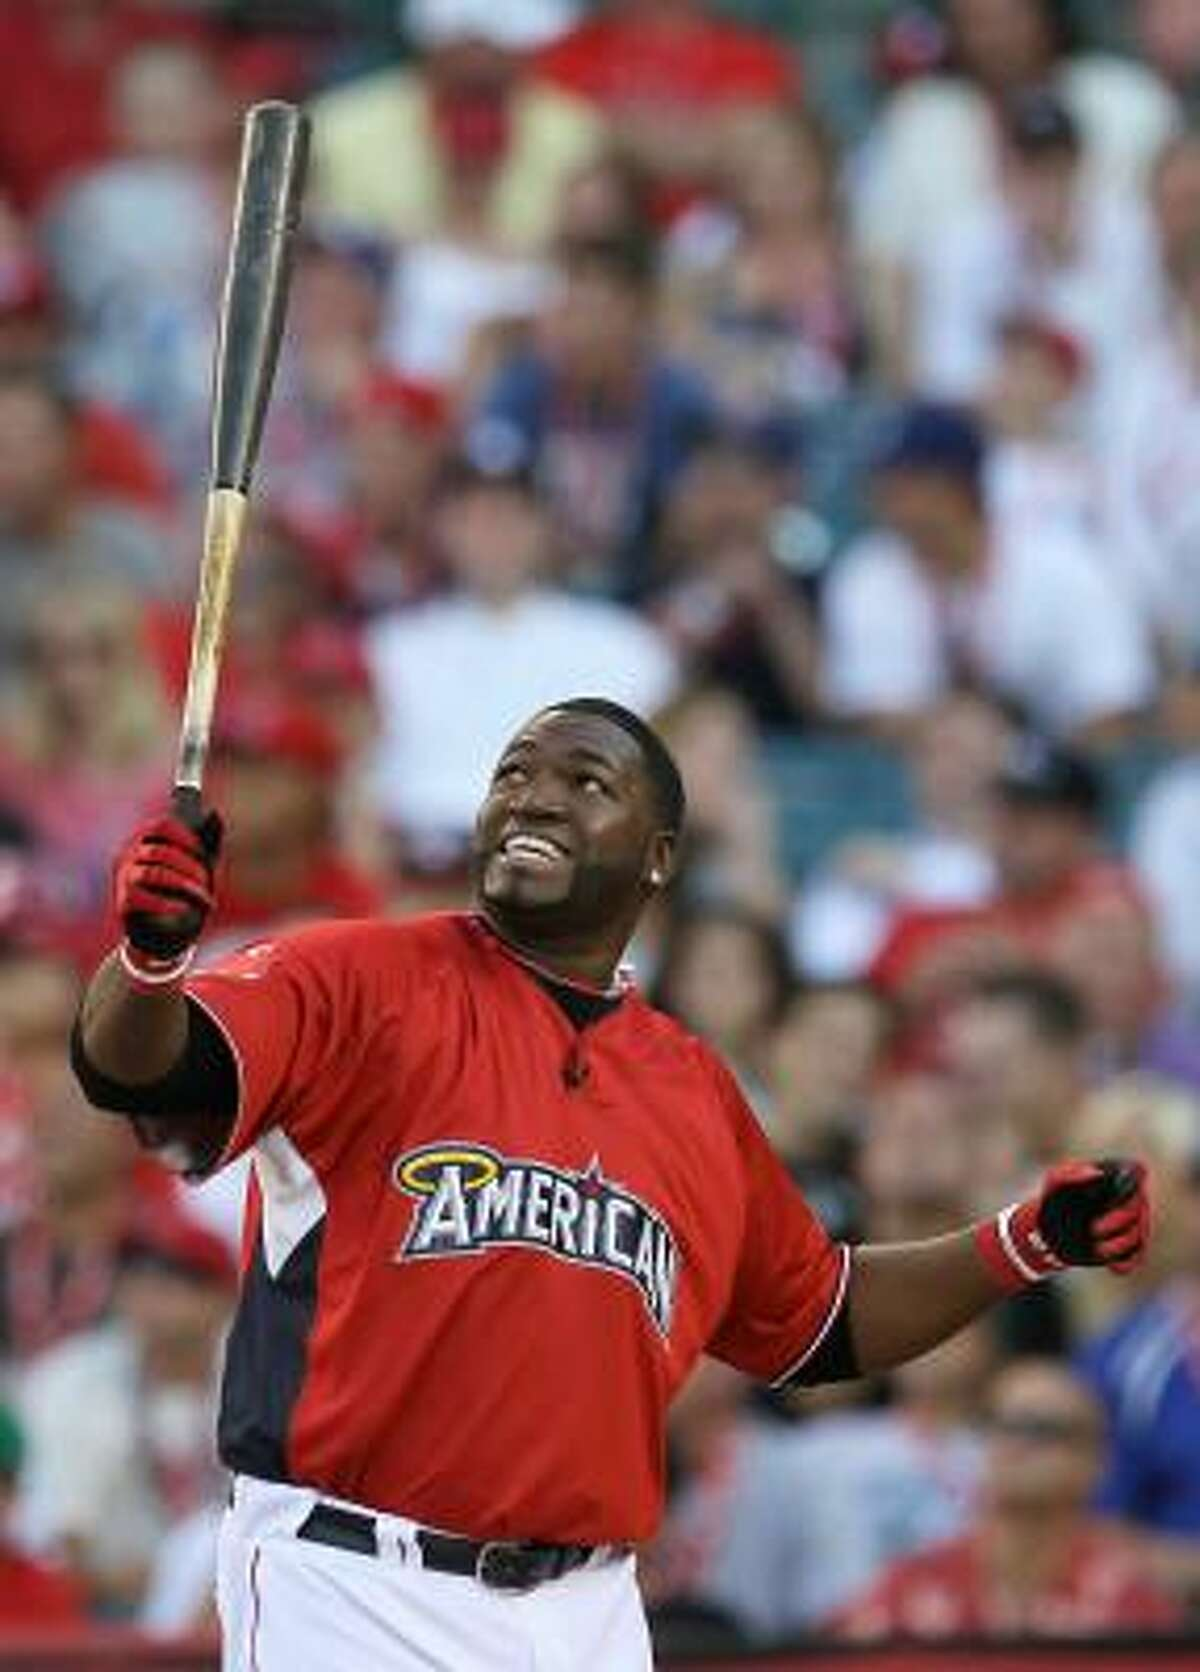 David Ortiz, Boston Red Sox, eight home runs. He dedicated his performance to former major league pitcher Jose Lima, a former Astro who died in May.